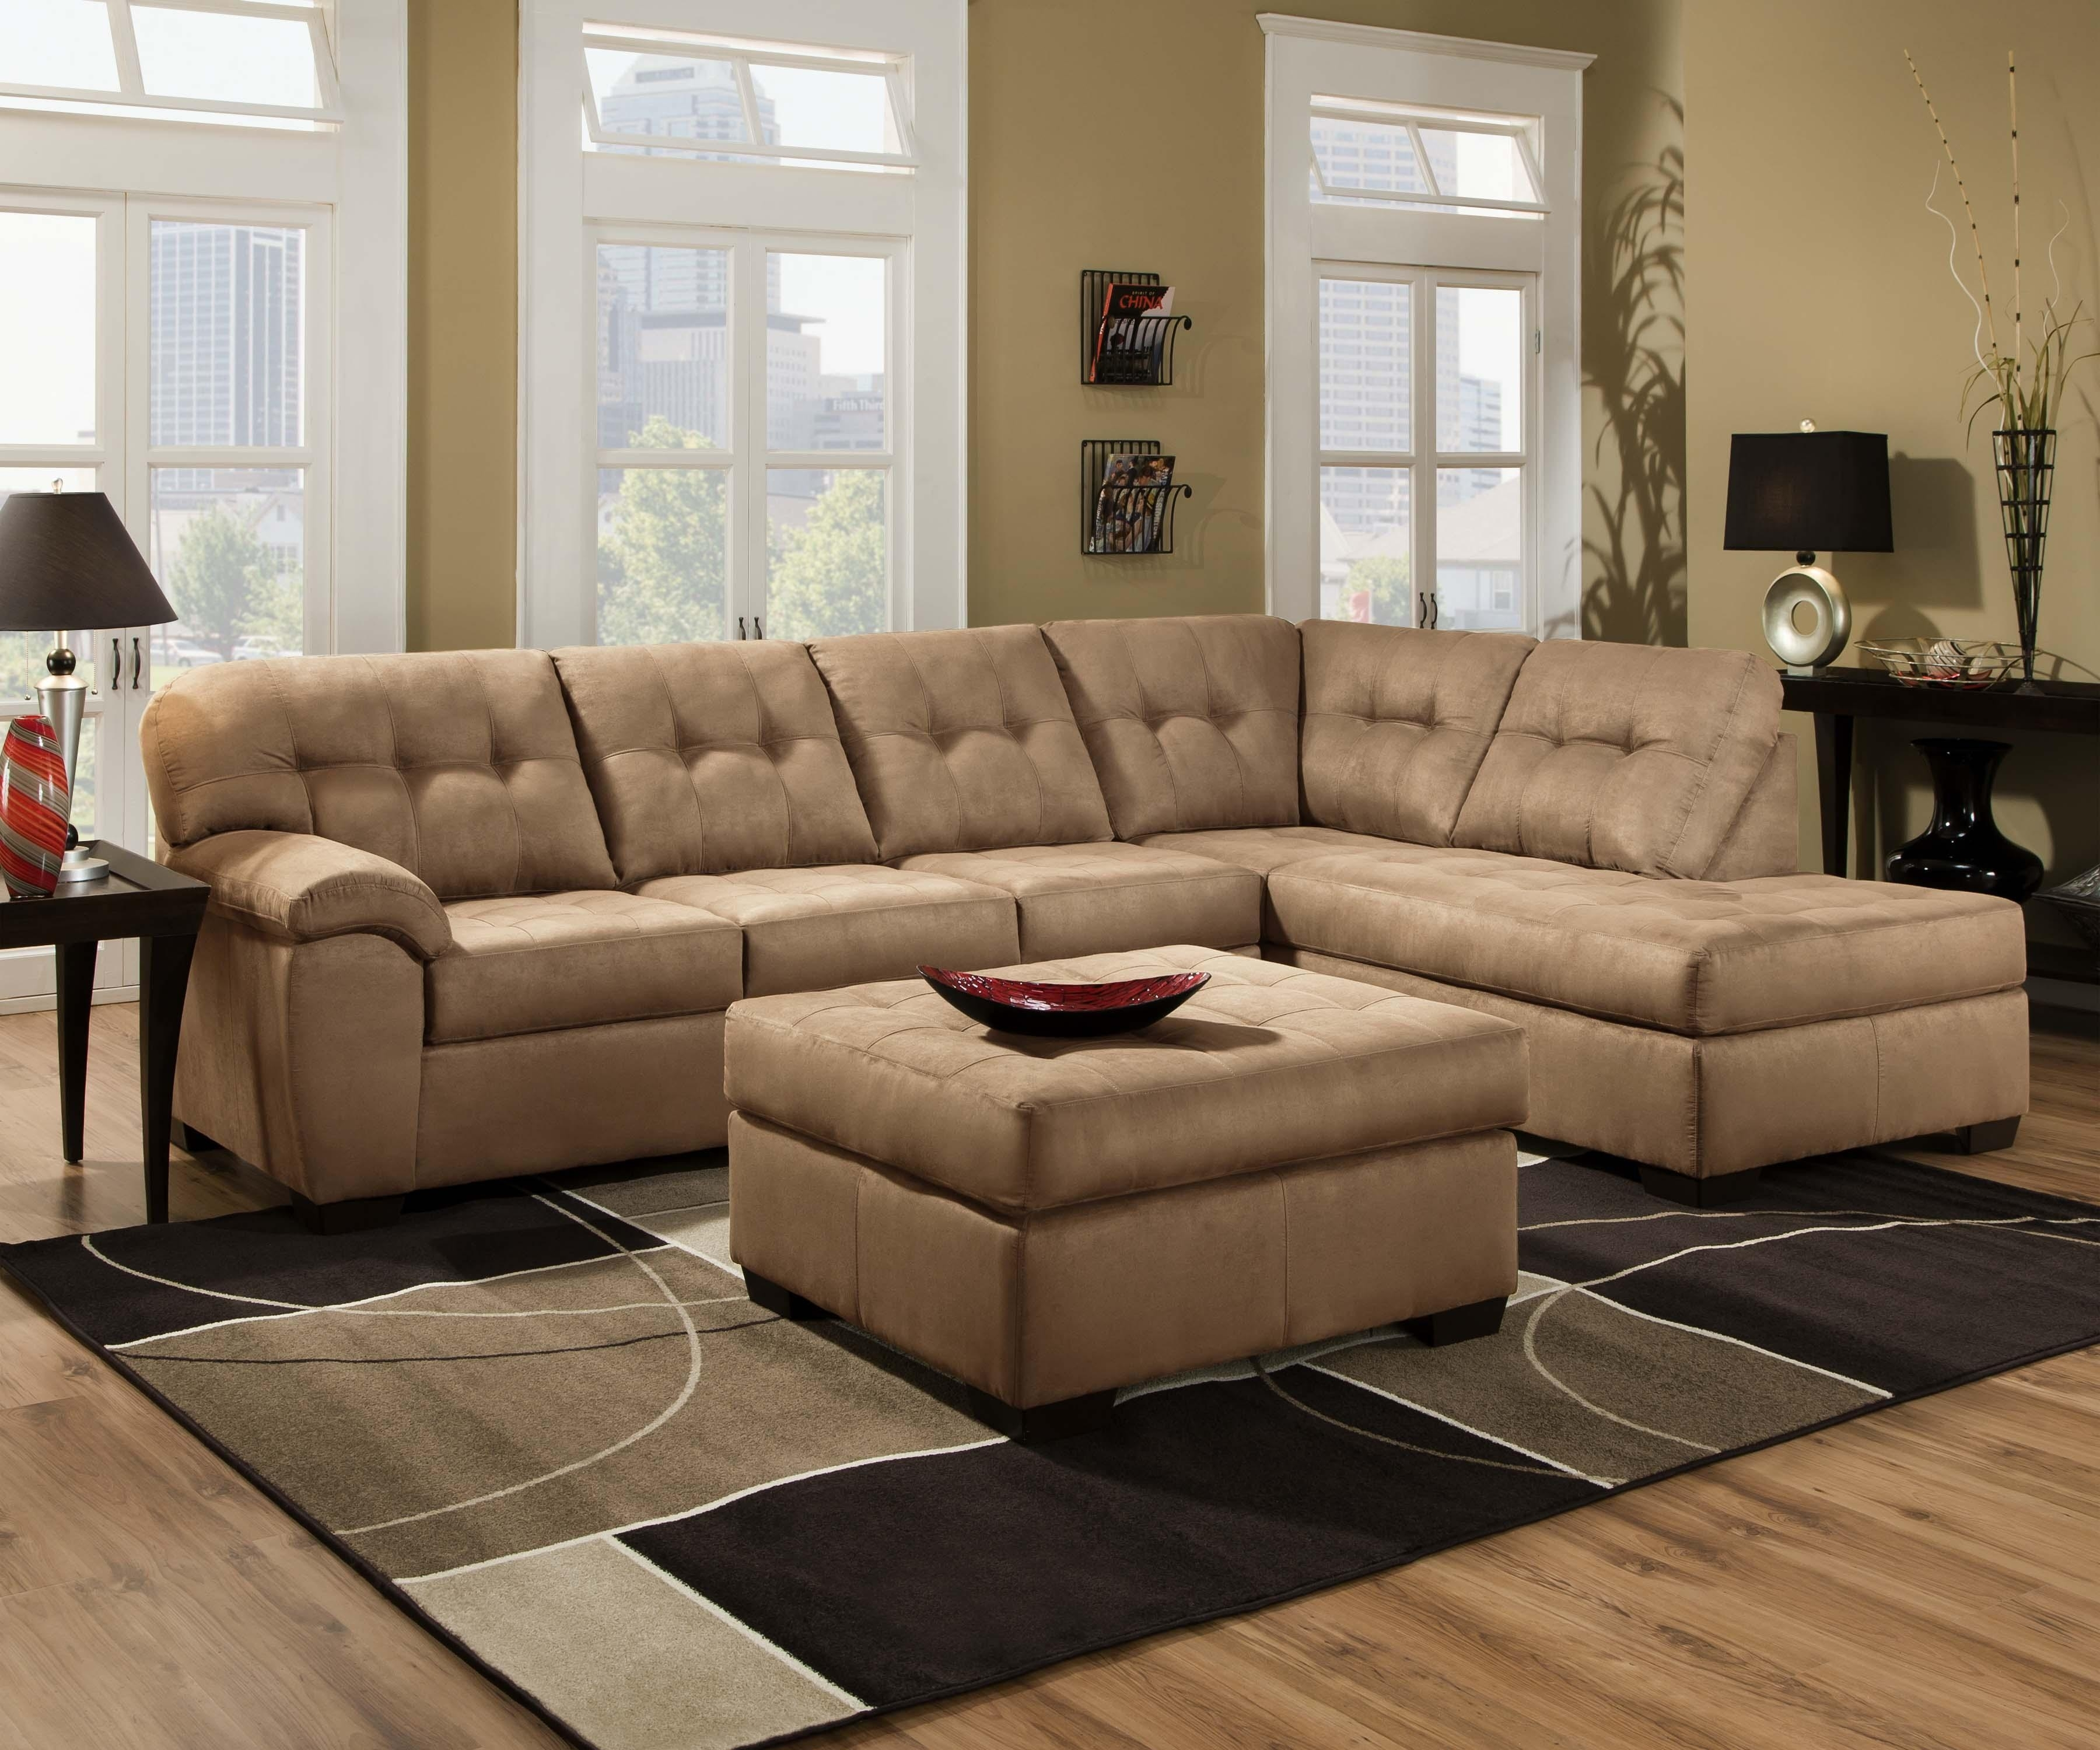 United Furniture Industries 9558 Transitional 2 Piece Sectional Sofa intended for Jacksonville Nc Sectional Sofas (Image 10 of 10)